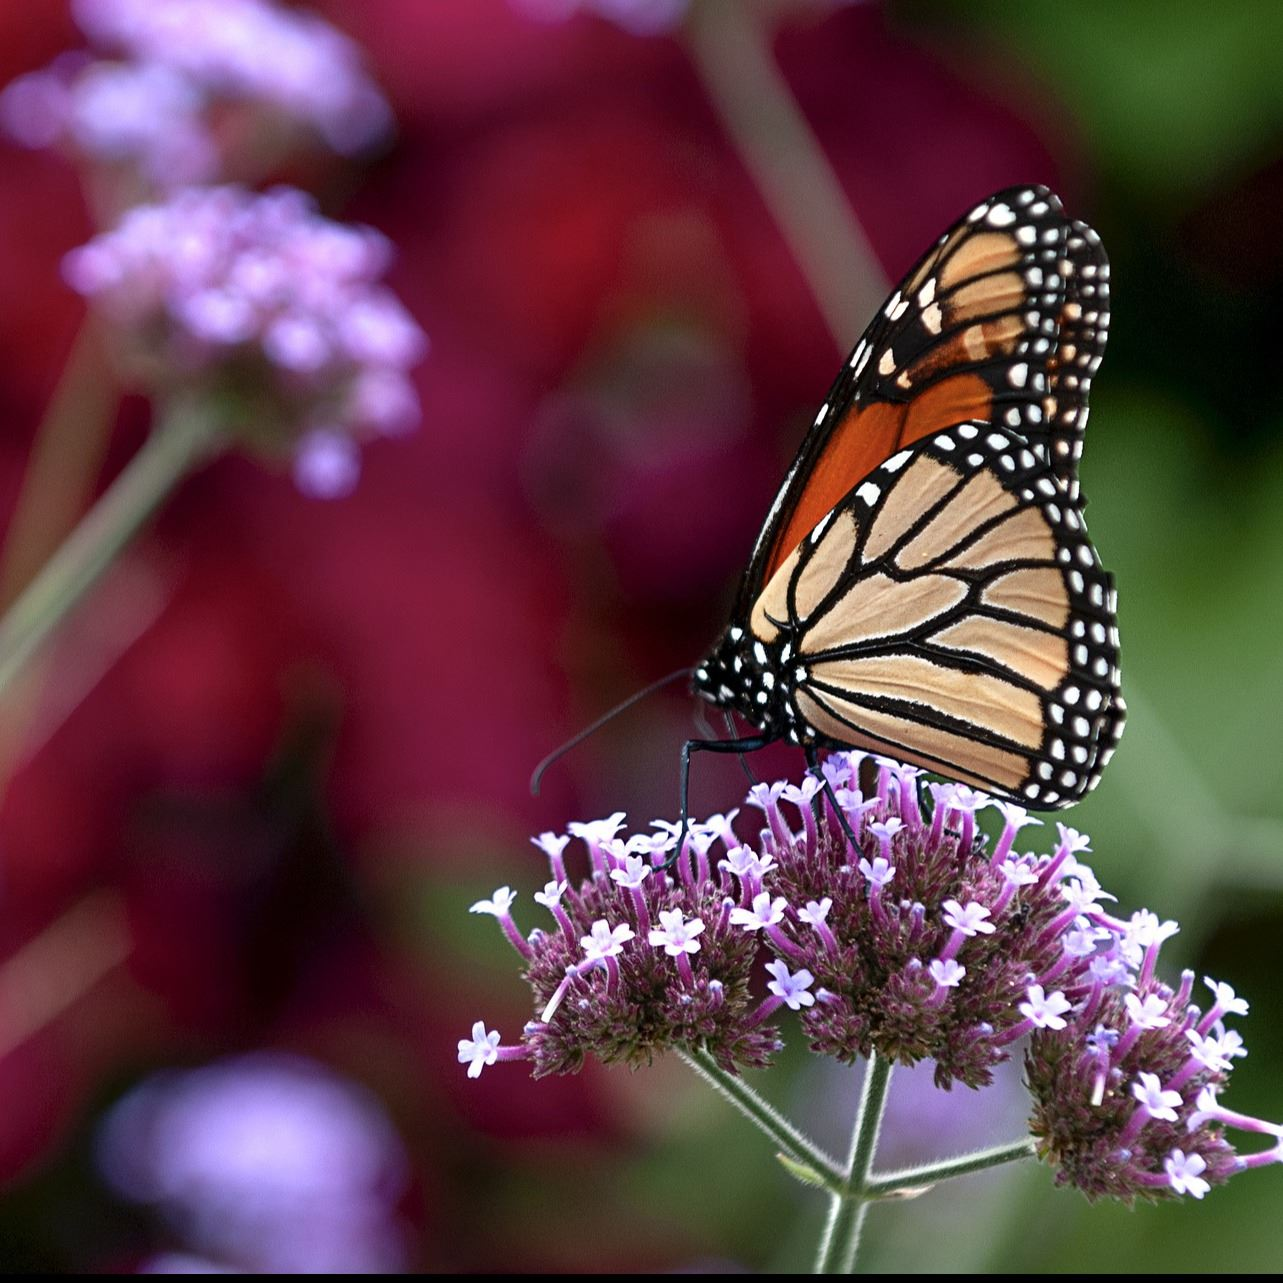 monarch Image by stanbalik from Pixabay